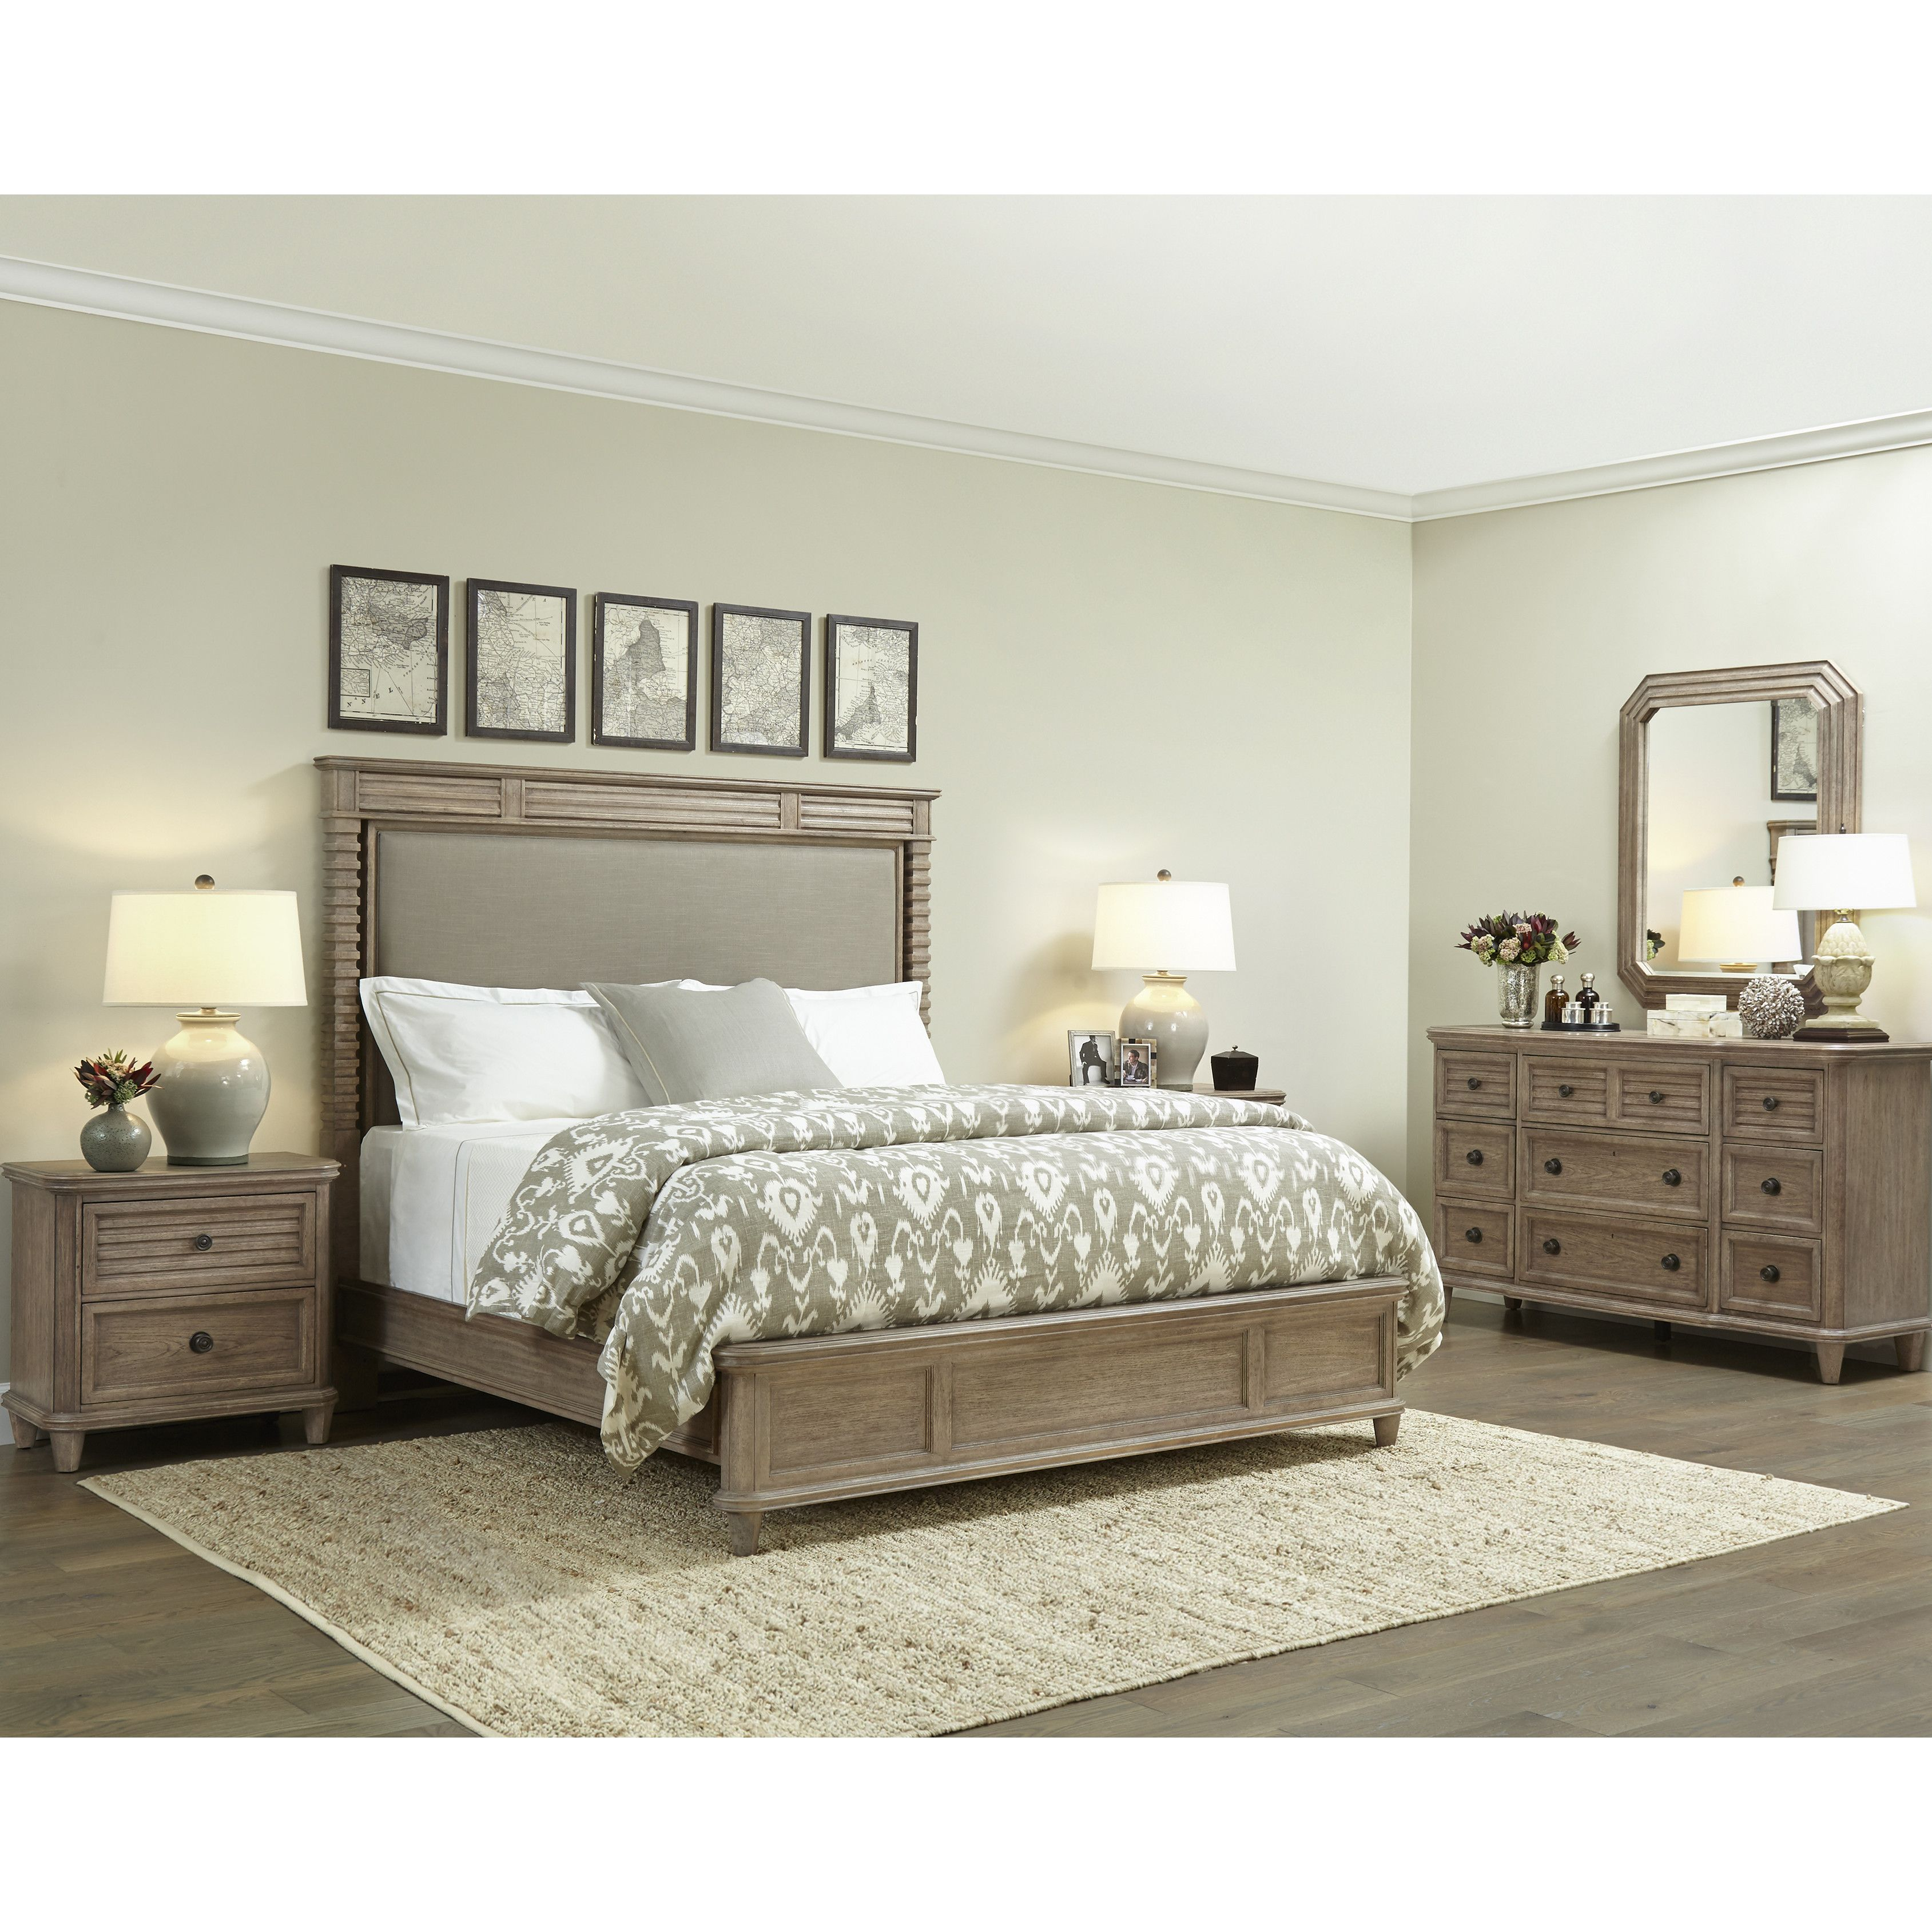 shelter cove panel bed cape master bedroom pinterest cove f c